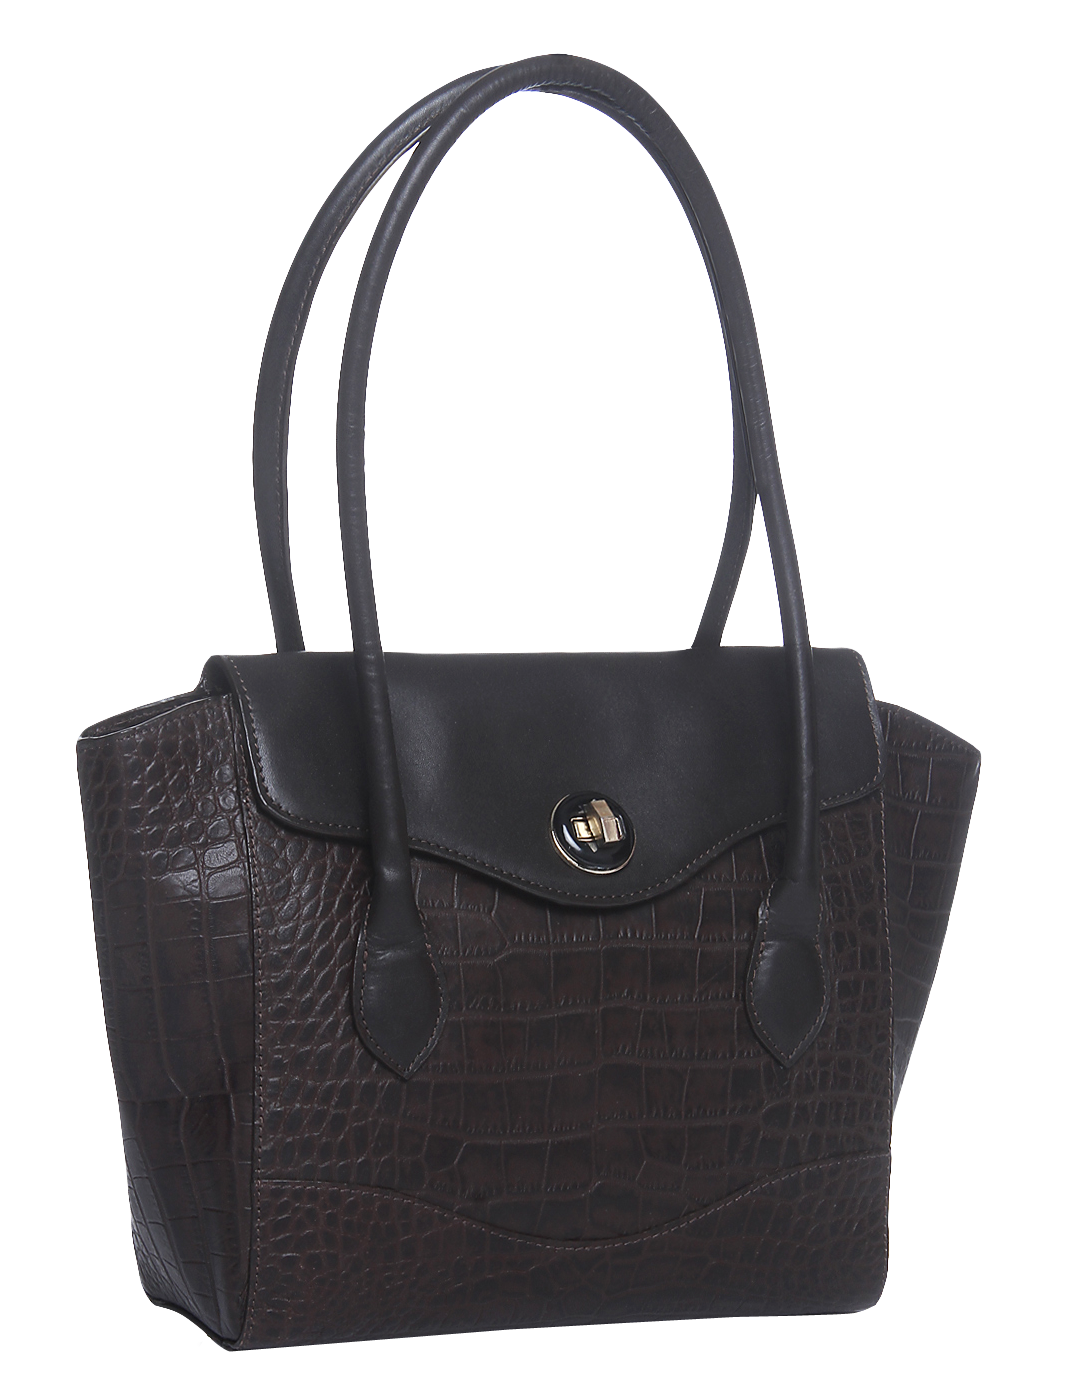 Black purse png. Leather handbag image purepng